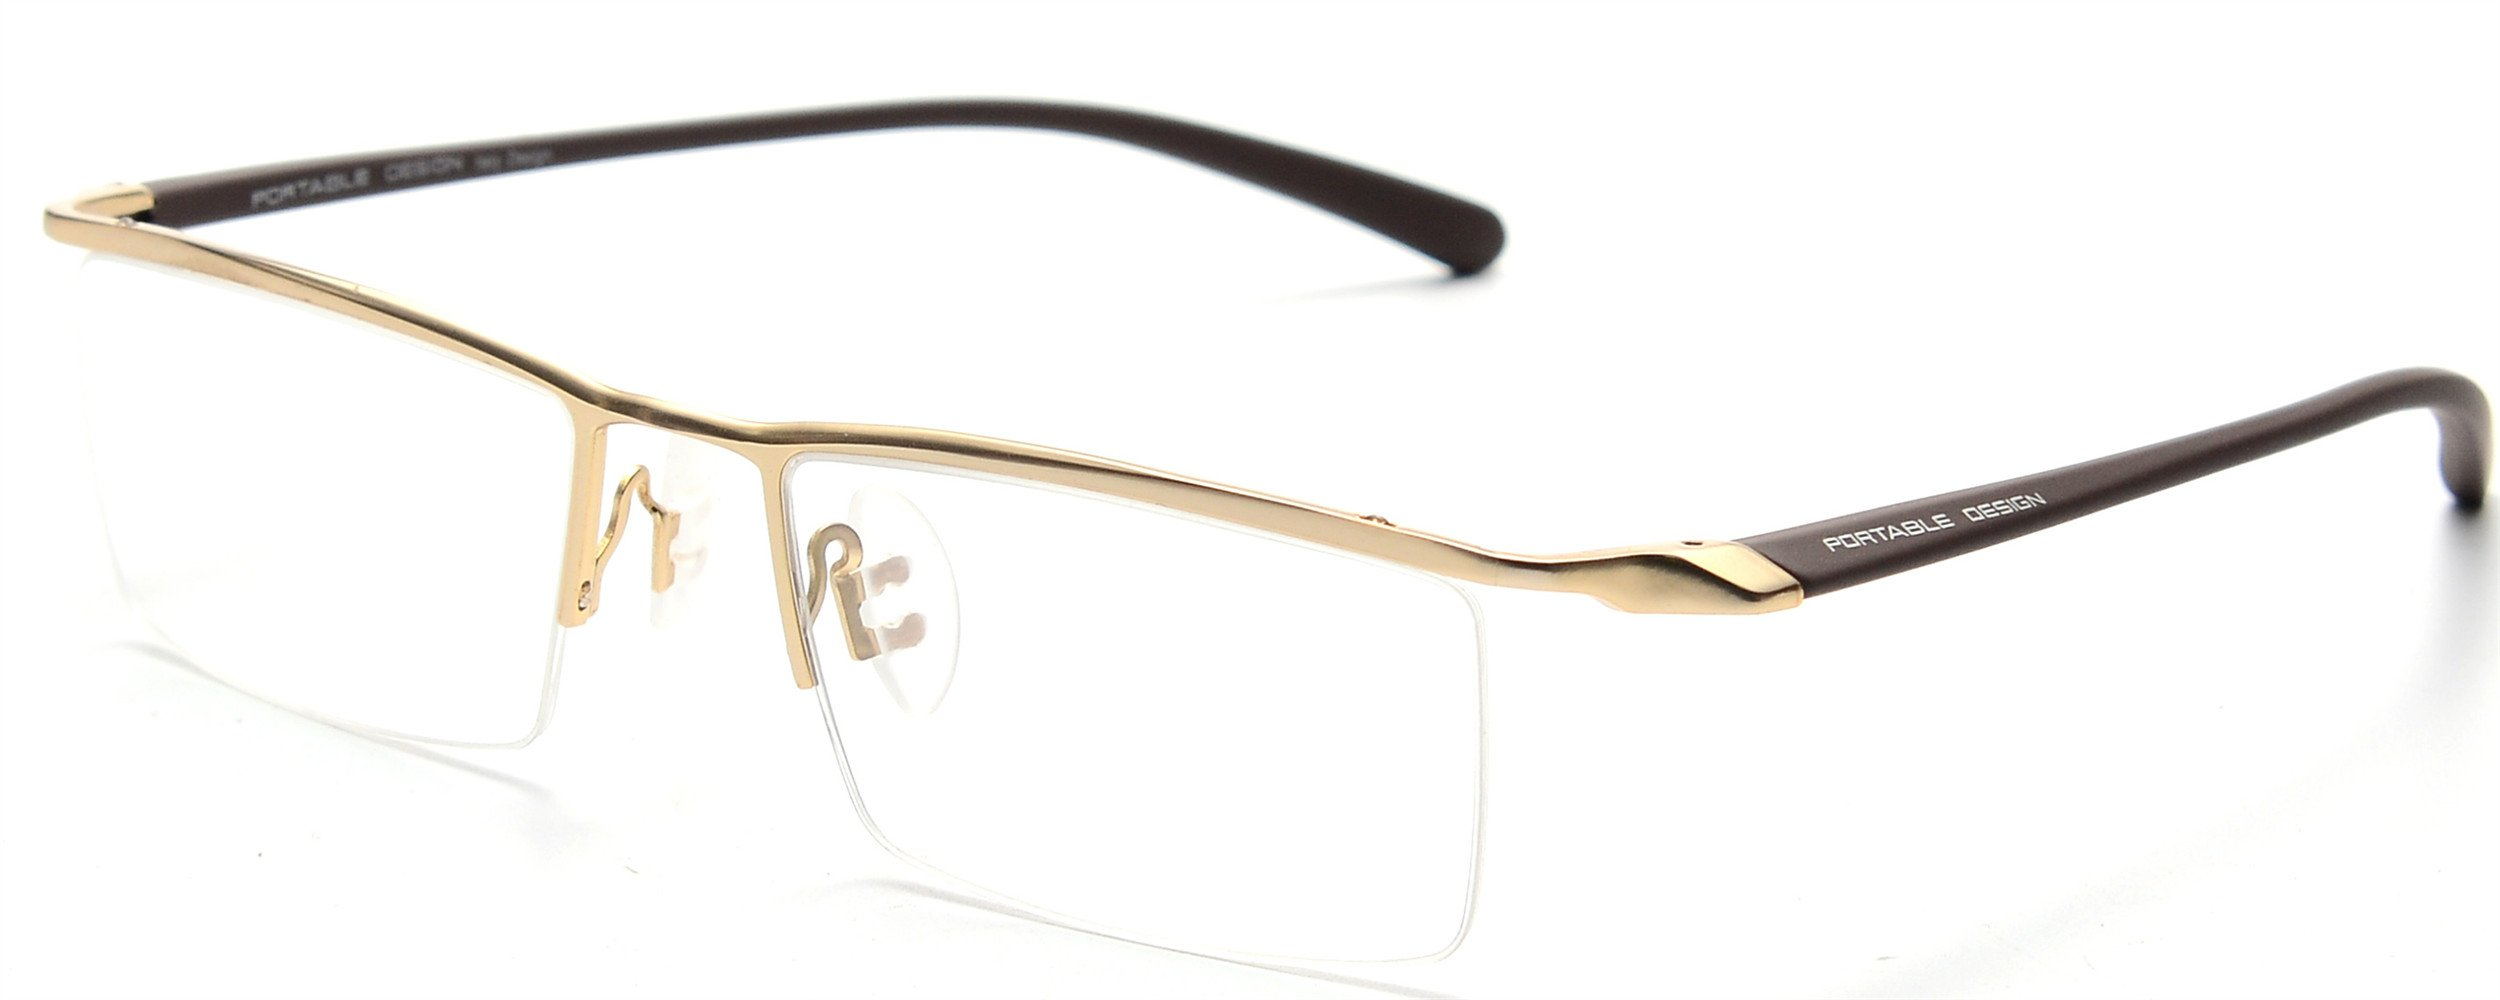 JNS Titanium Semi-rimless Eyeglasses Business Optical Frame Clear Lens